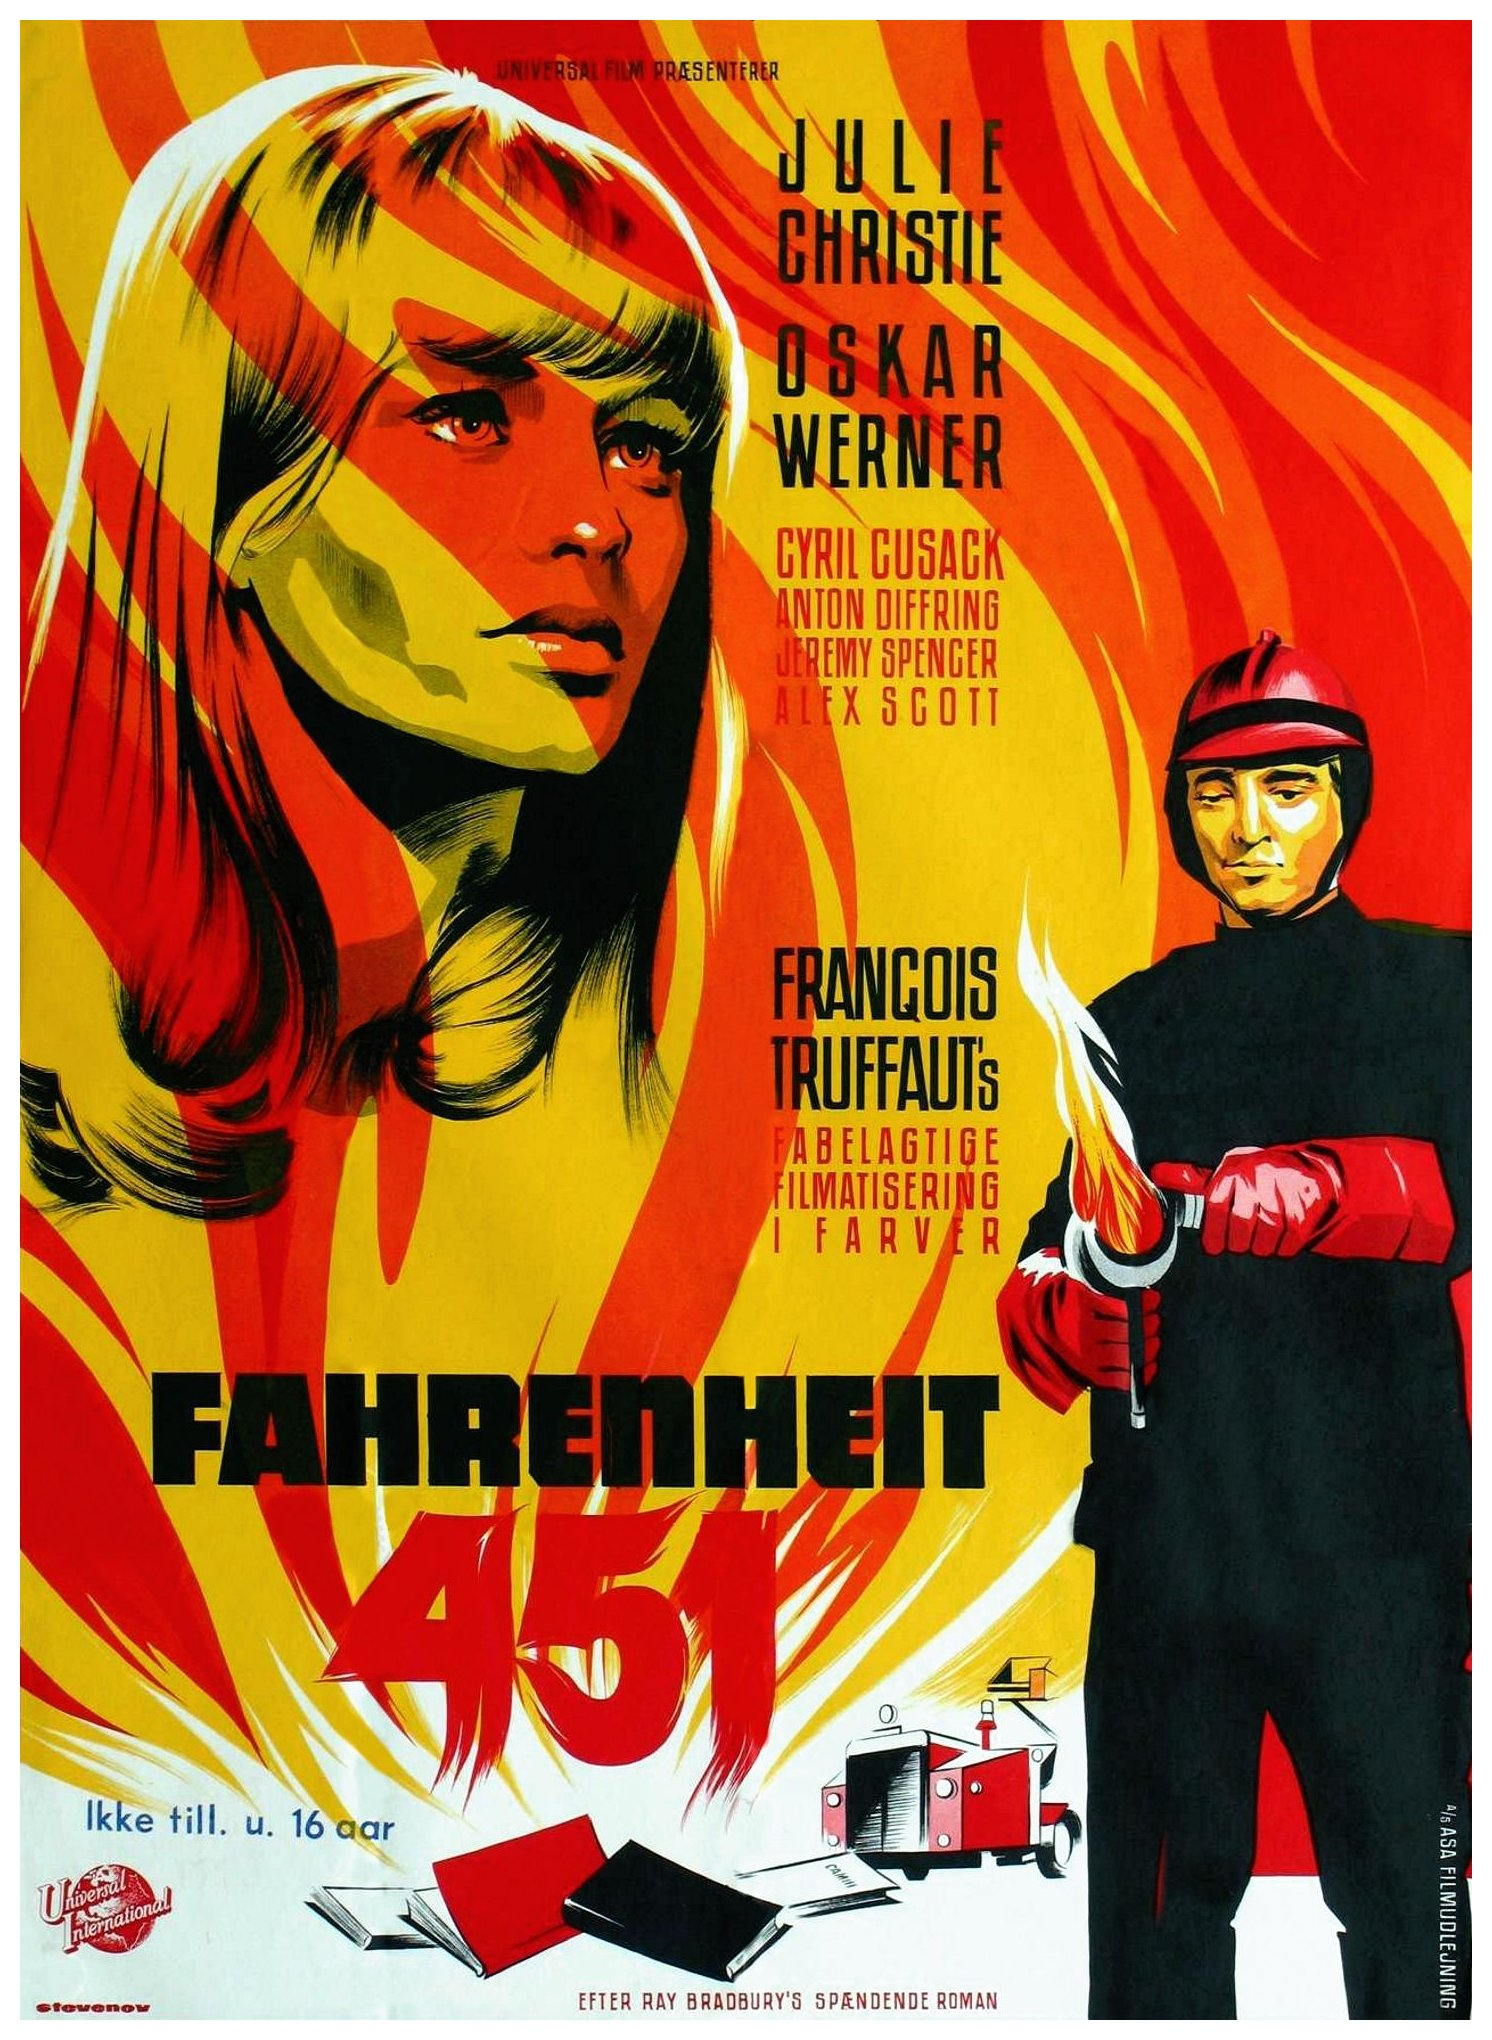 fahrenheit 451 what was granger s philosophy in life taught to him by his grandfather